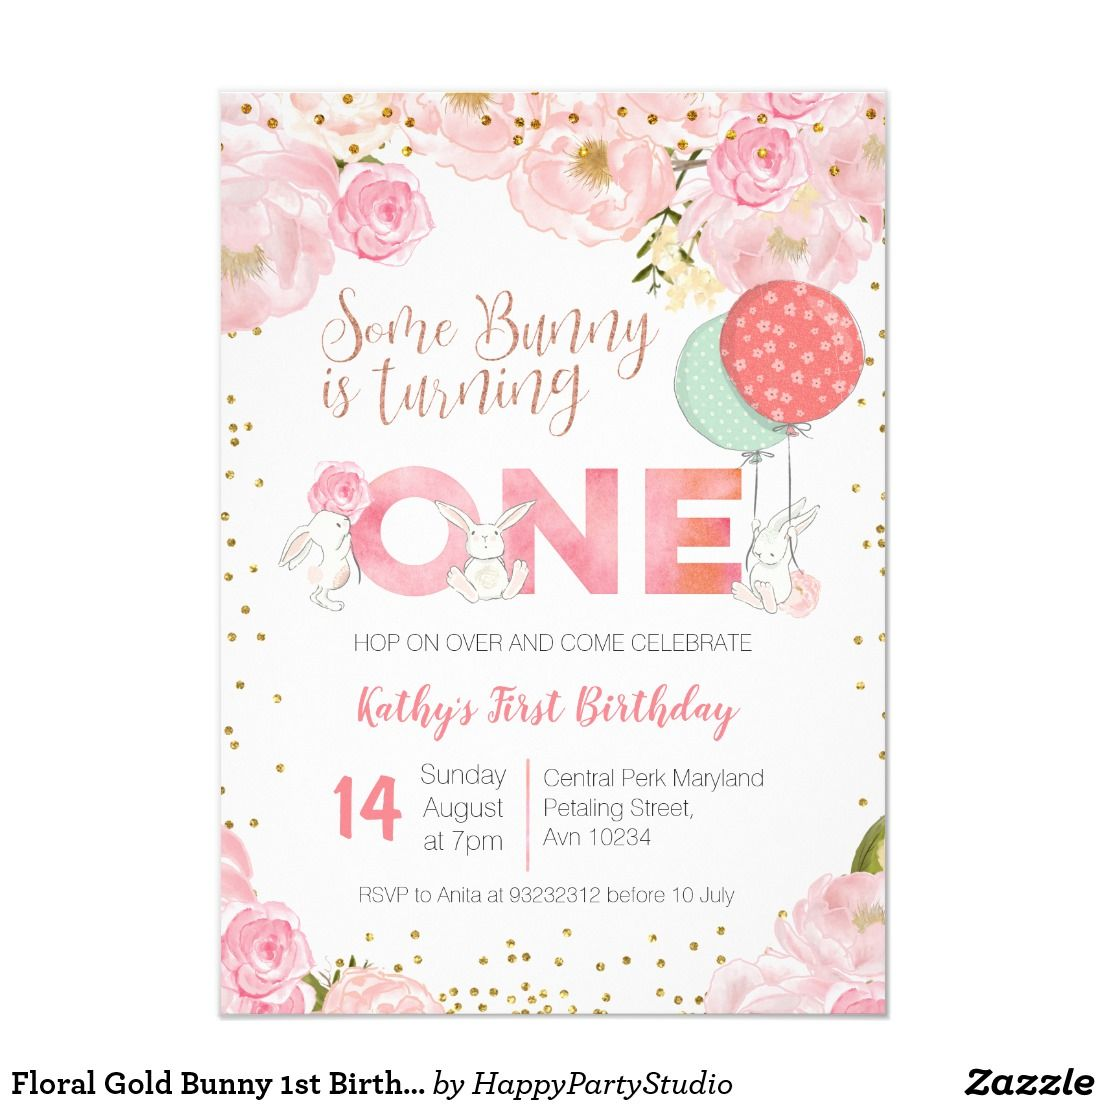 Floral Gold Bunny 1st Birthday Floral Invitation Zazzle